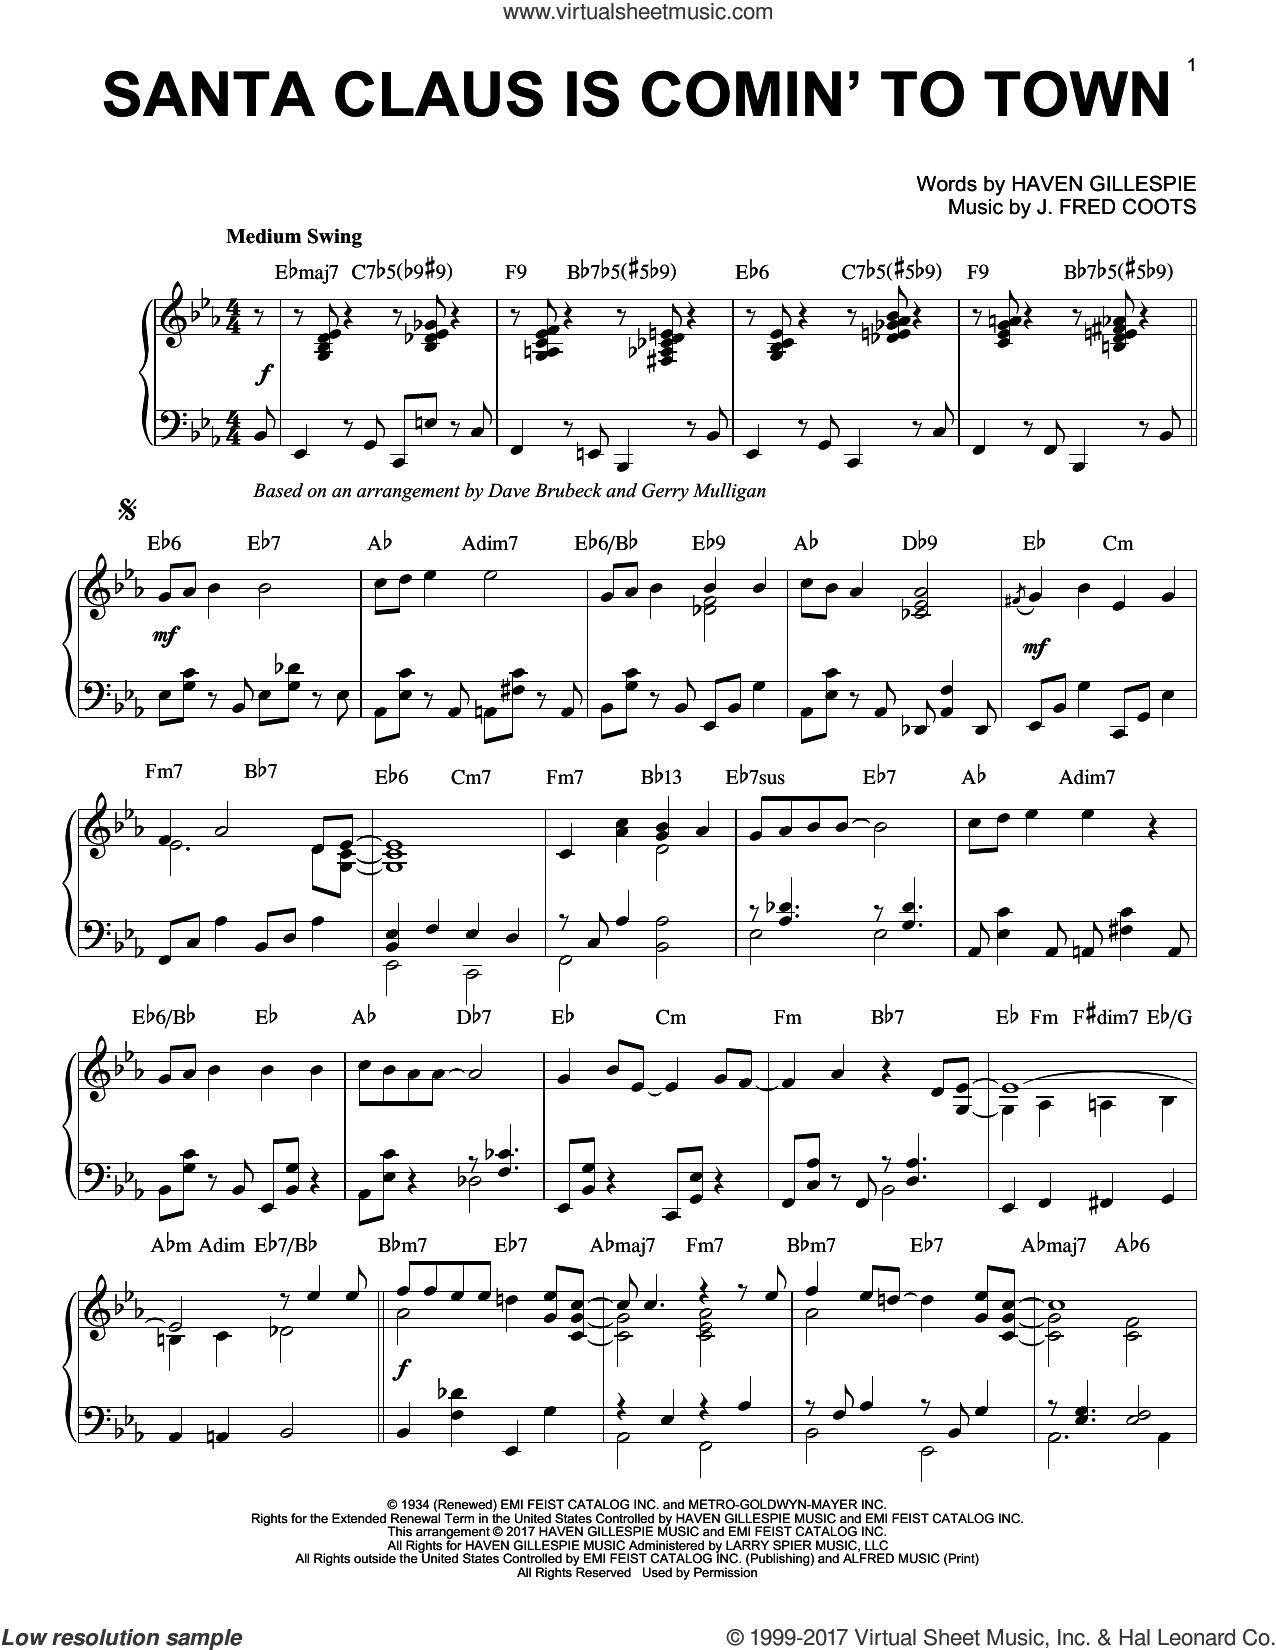 Santa Claus Is Comin' To Town sheet music for piano solo by Dave Brubeck and J. Fred Coots, Christmas carol score, intermediate piano. Score Image Preview.